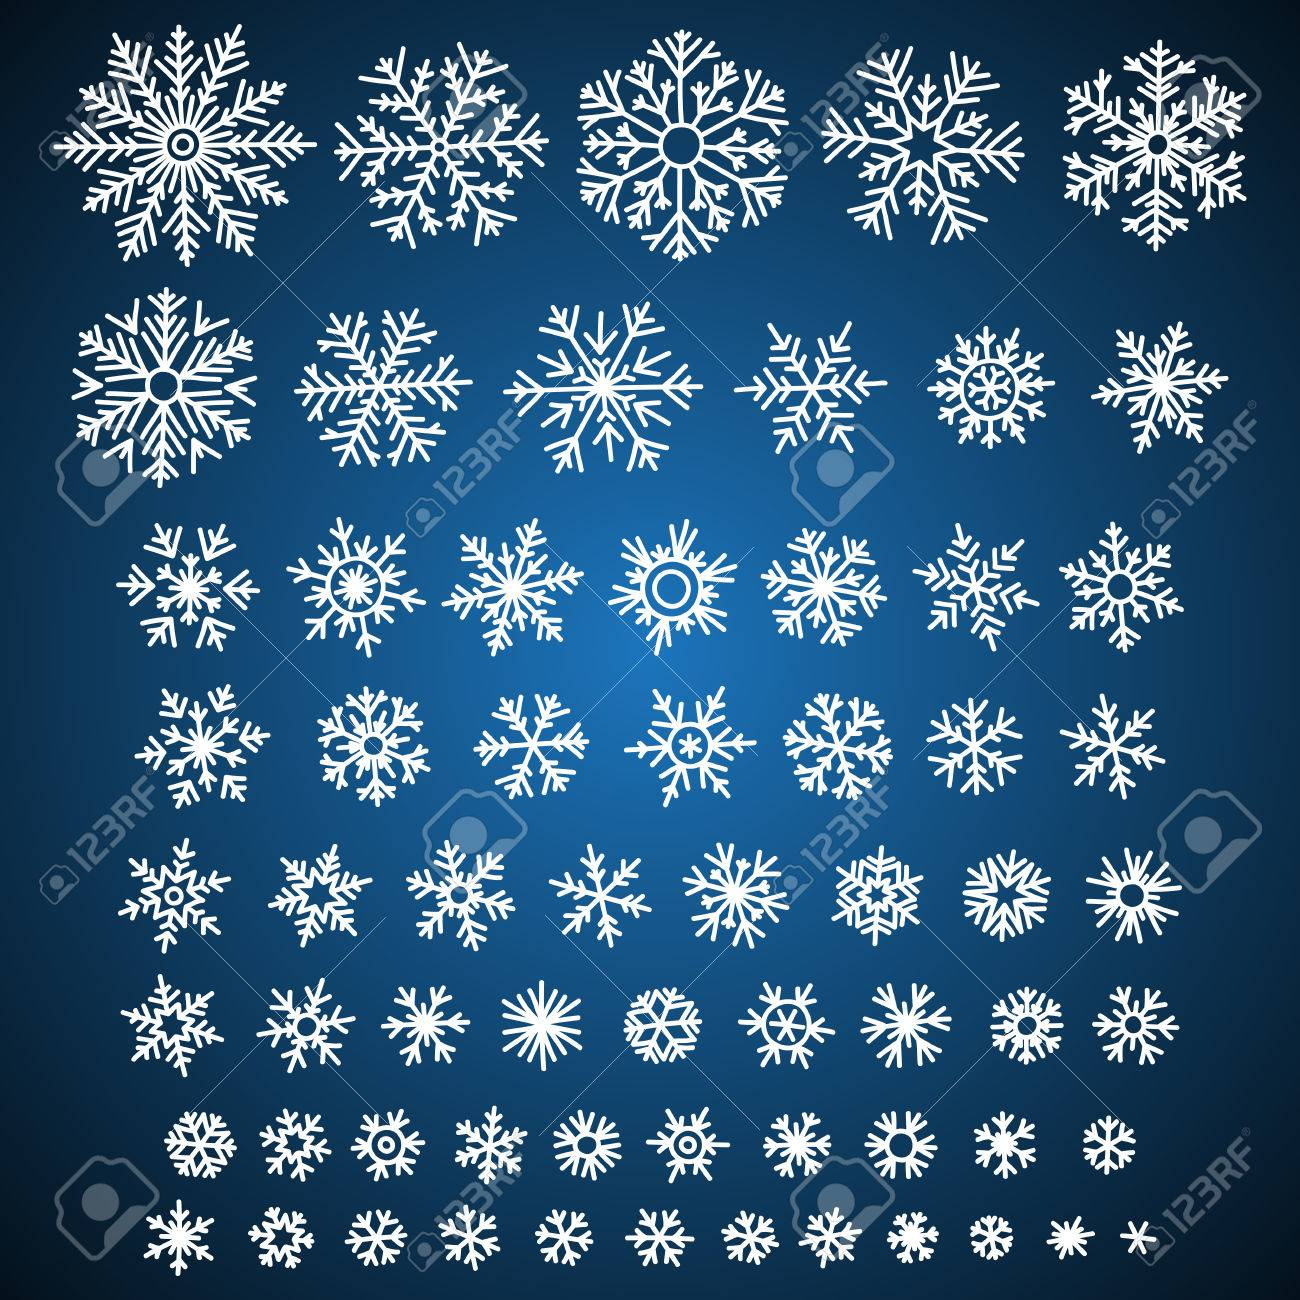 Set of different vector hand-drawn snowflakes - 47728460